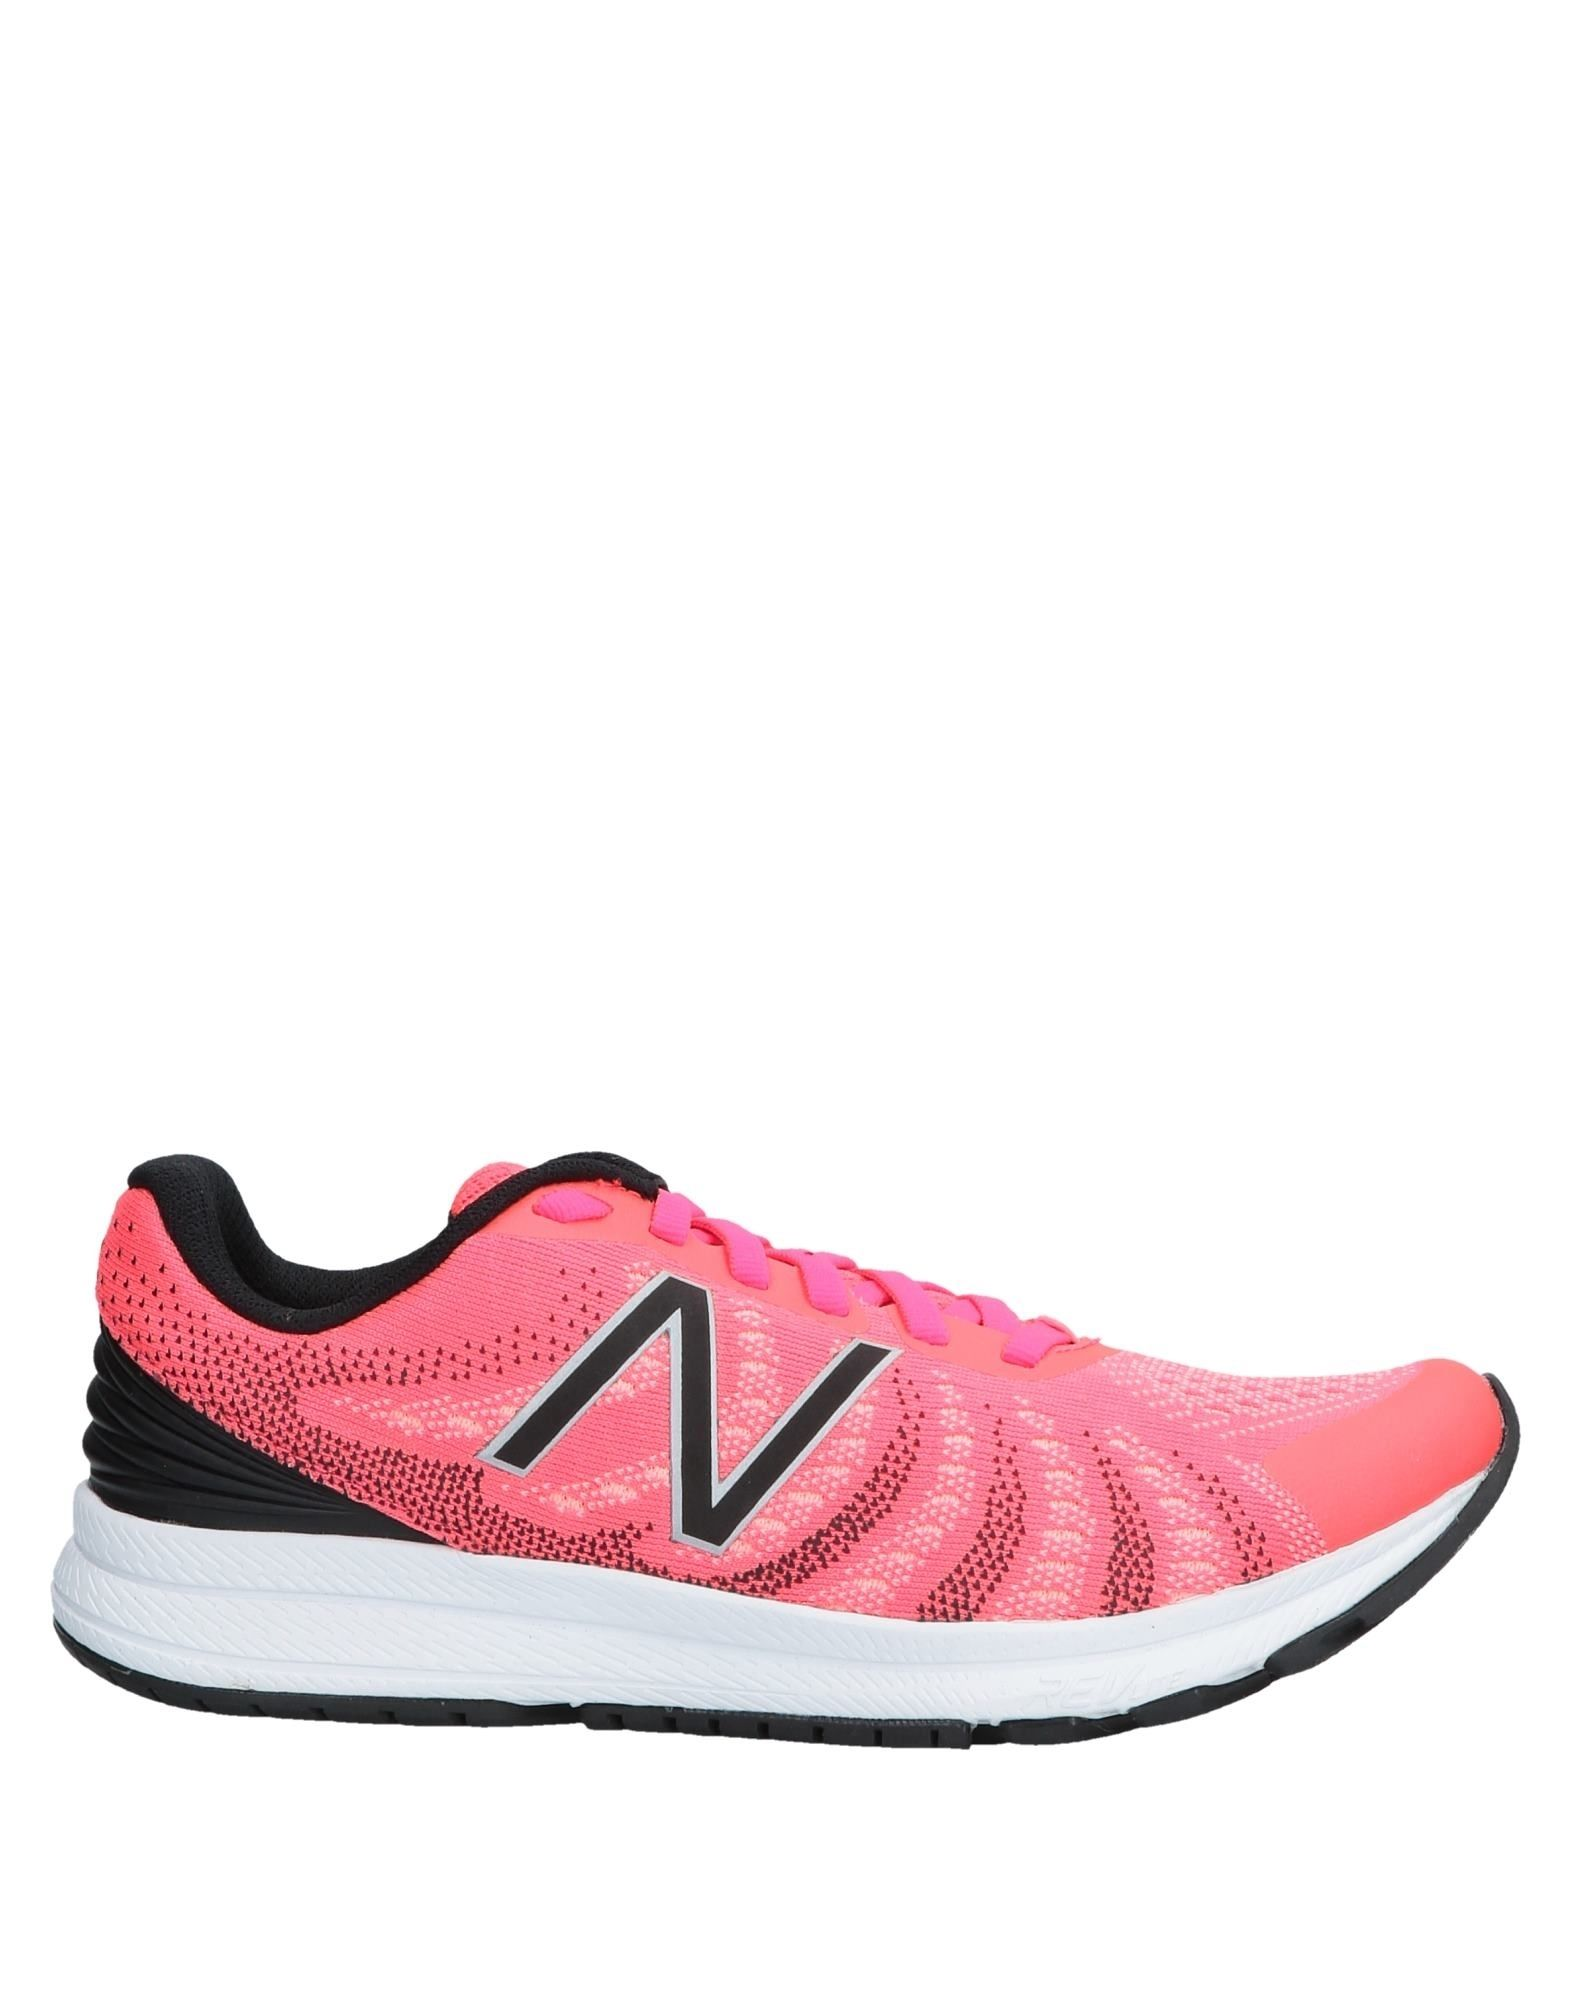 New Balance Sneakers - Women New Balance Sneakers - online on  Canada - Sneakers 11569861QE 433fb2